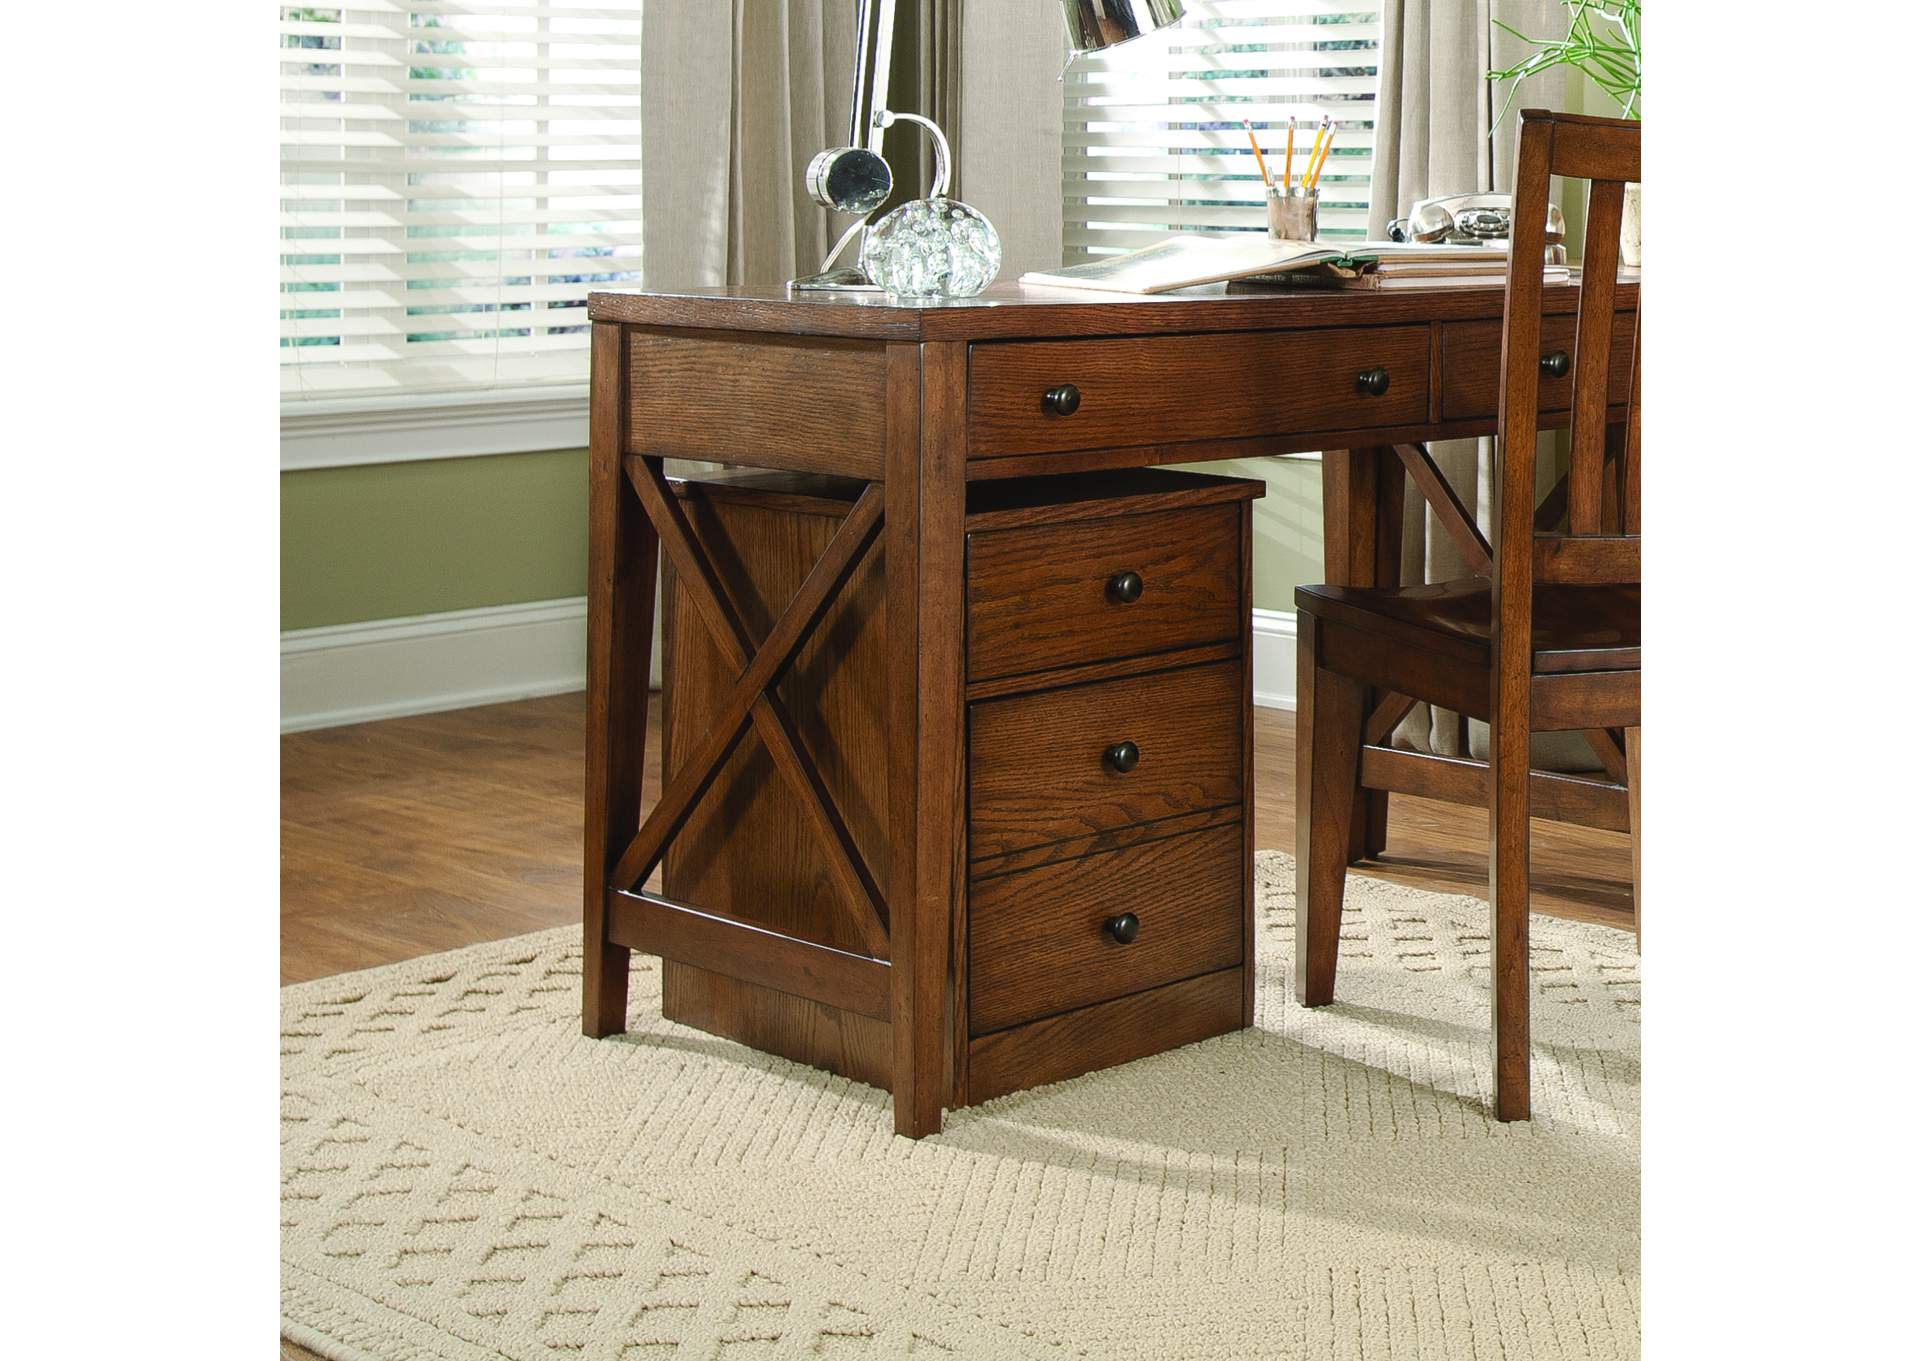 Hearthstone Ridge Rustic Oak Mobile File Cabinet,Liberty